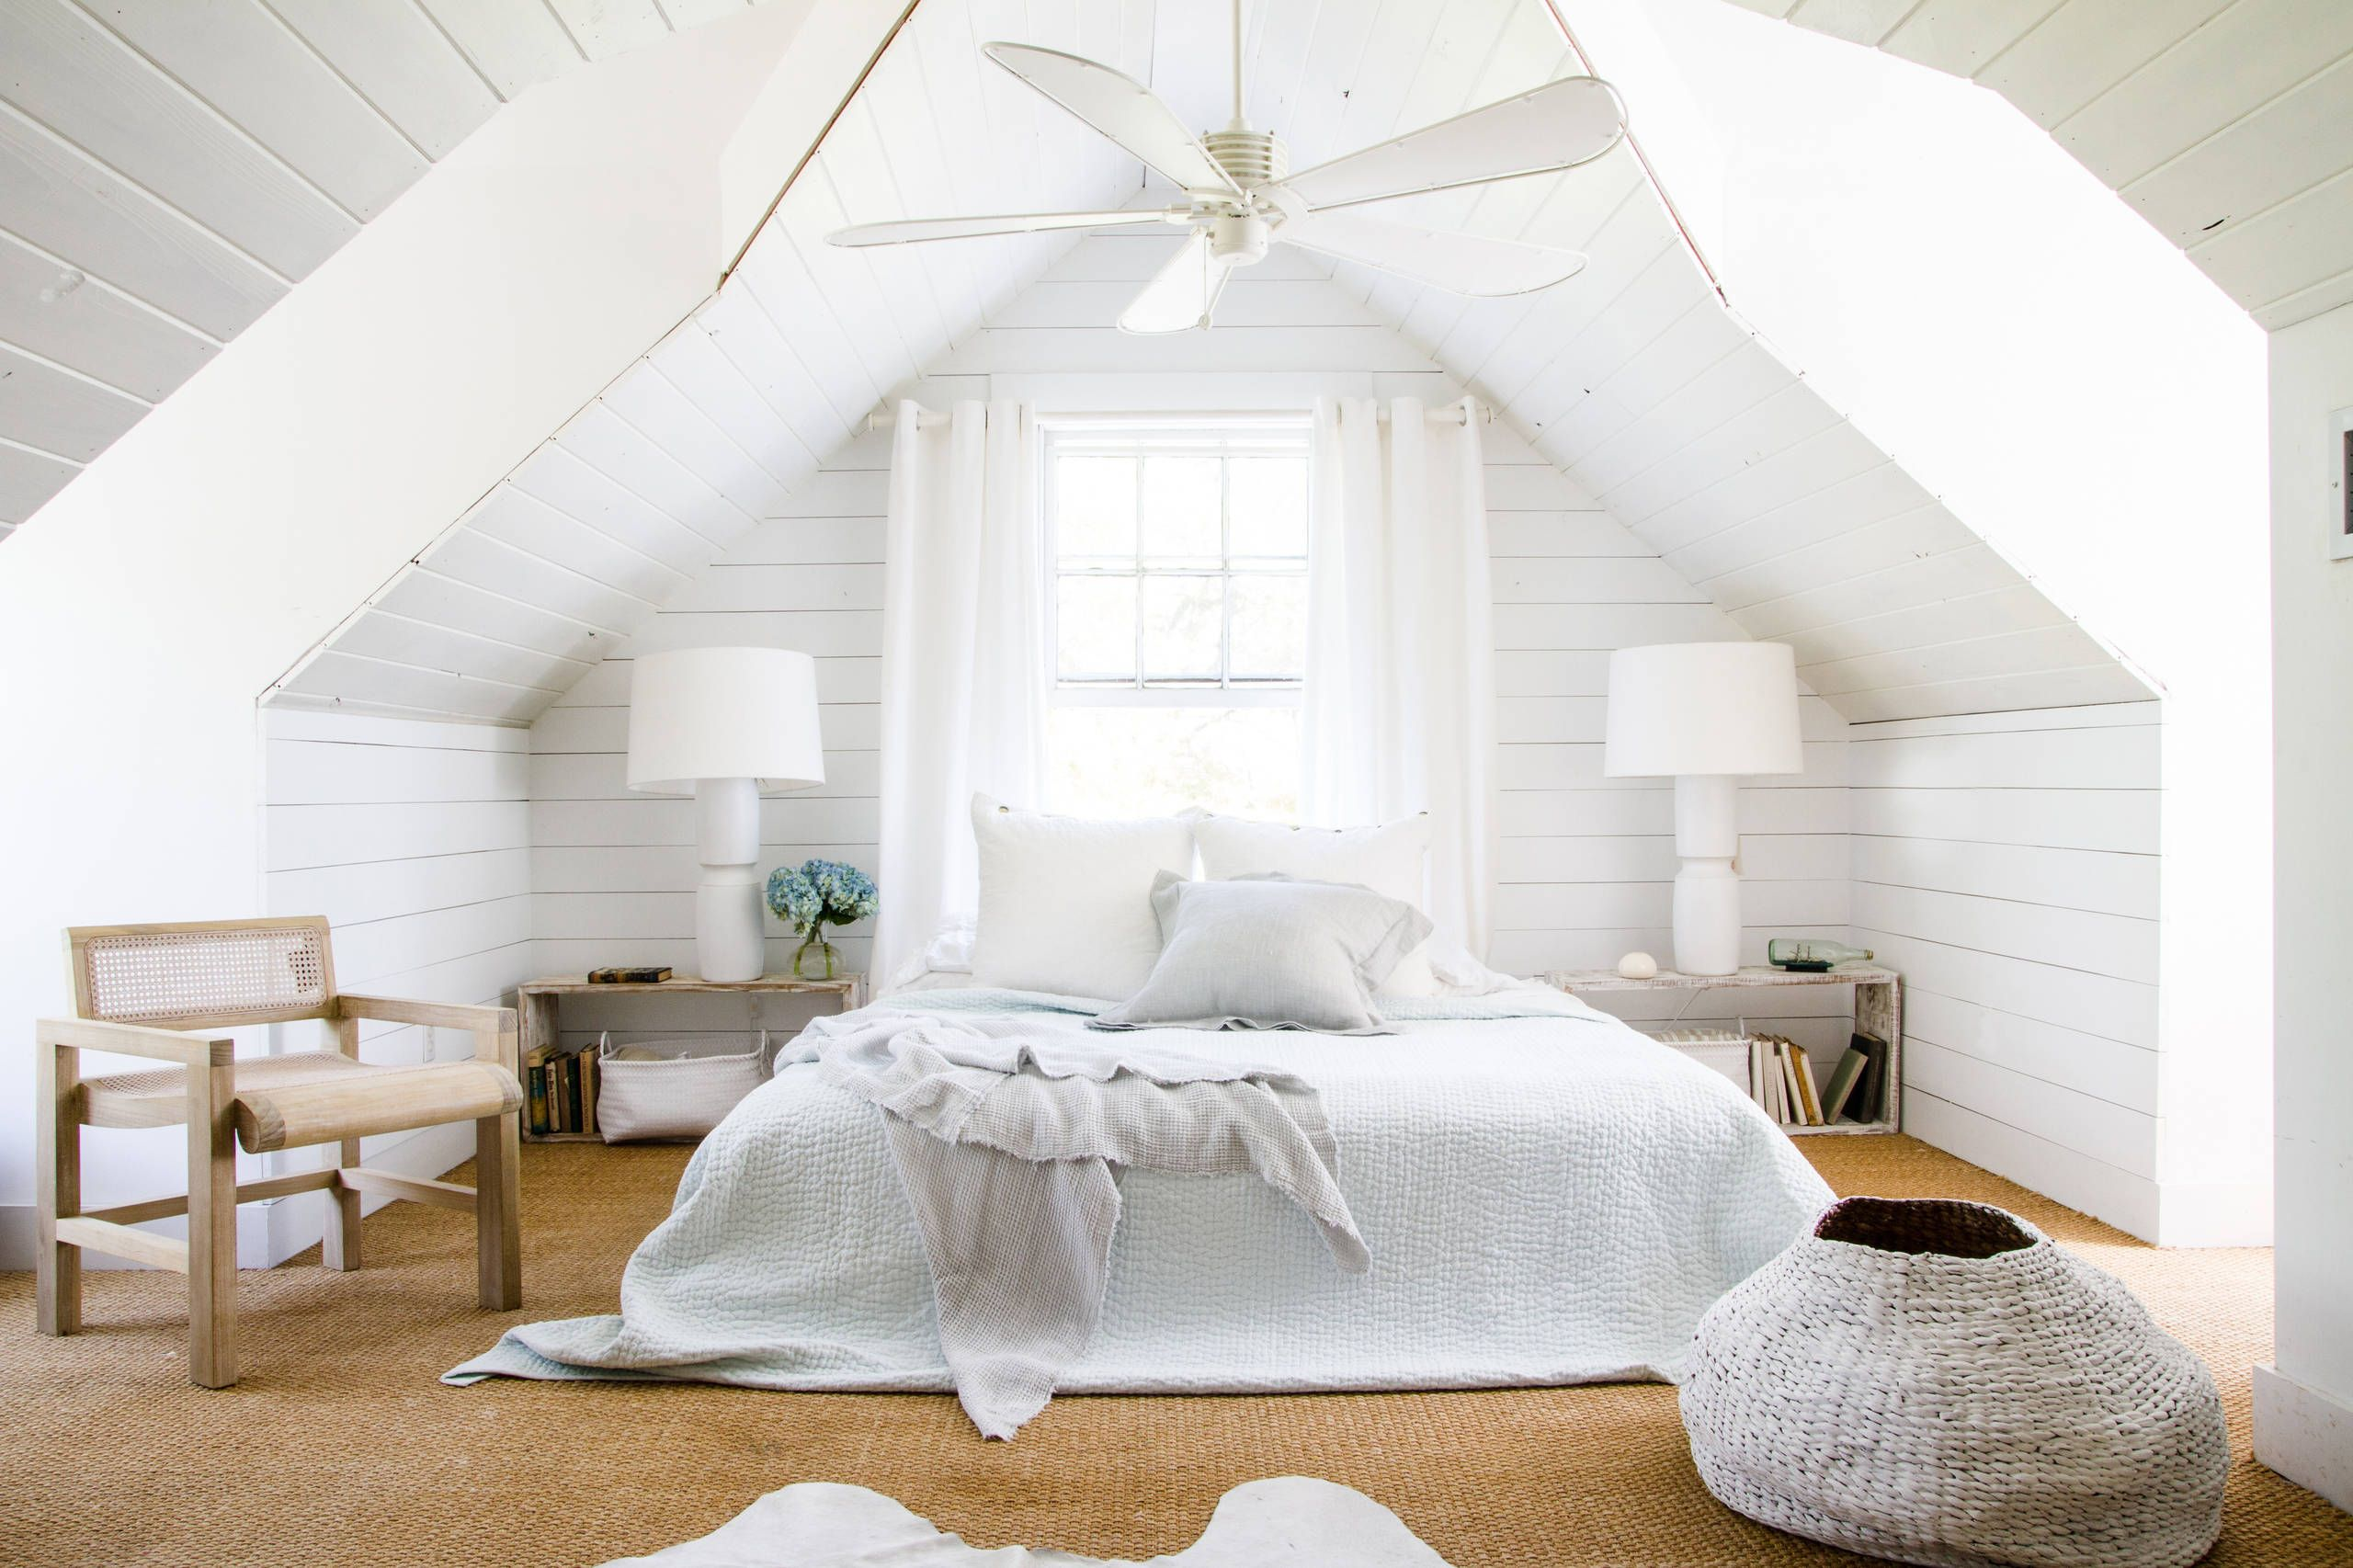 5 Reasons To Put Shiplap Walls In Every Room Attic Bedroom Designs White Bedroom Design Attic Bedroom Small